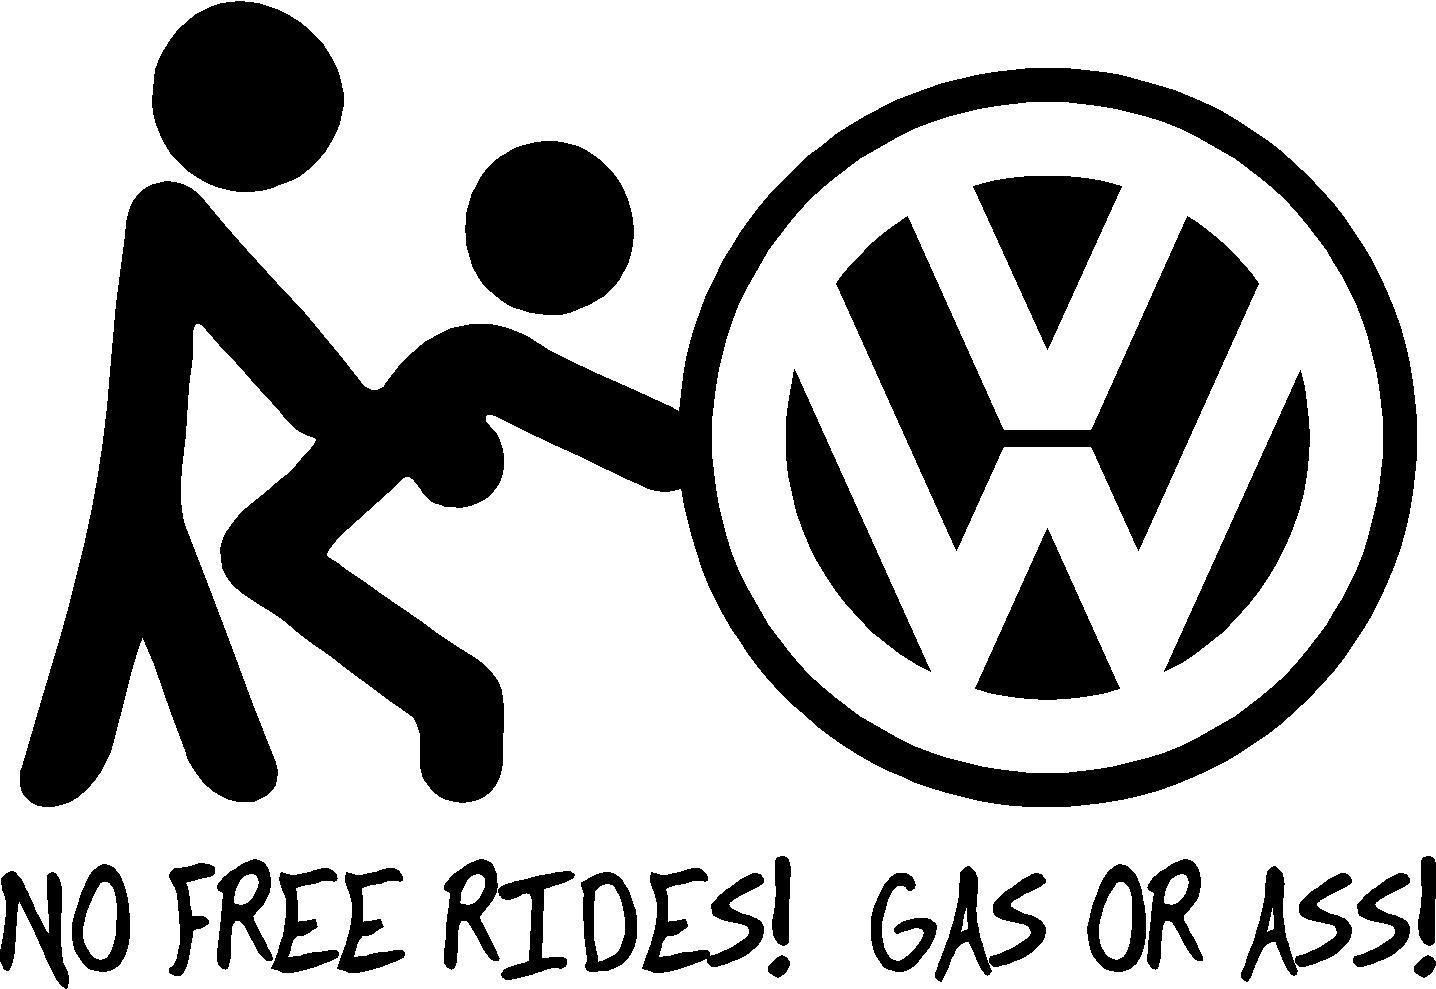 Funny Vw Decal Volkswagen Rabbit Eurovan Cabrio Ass Gas